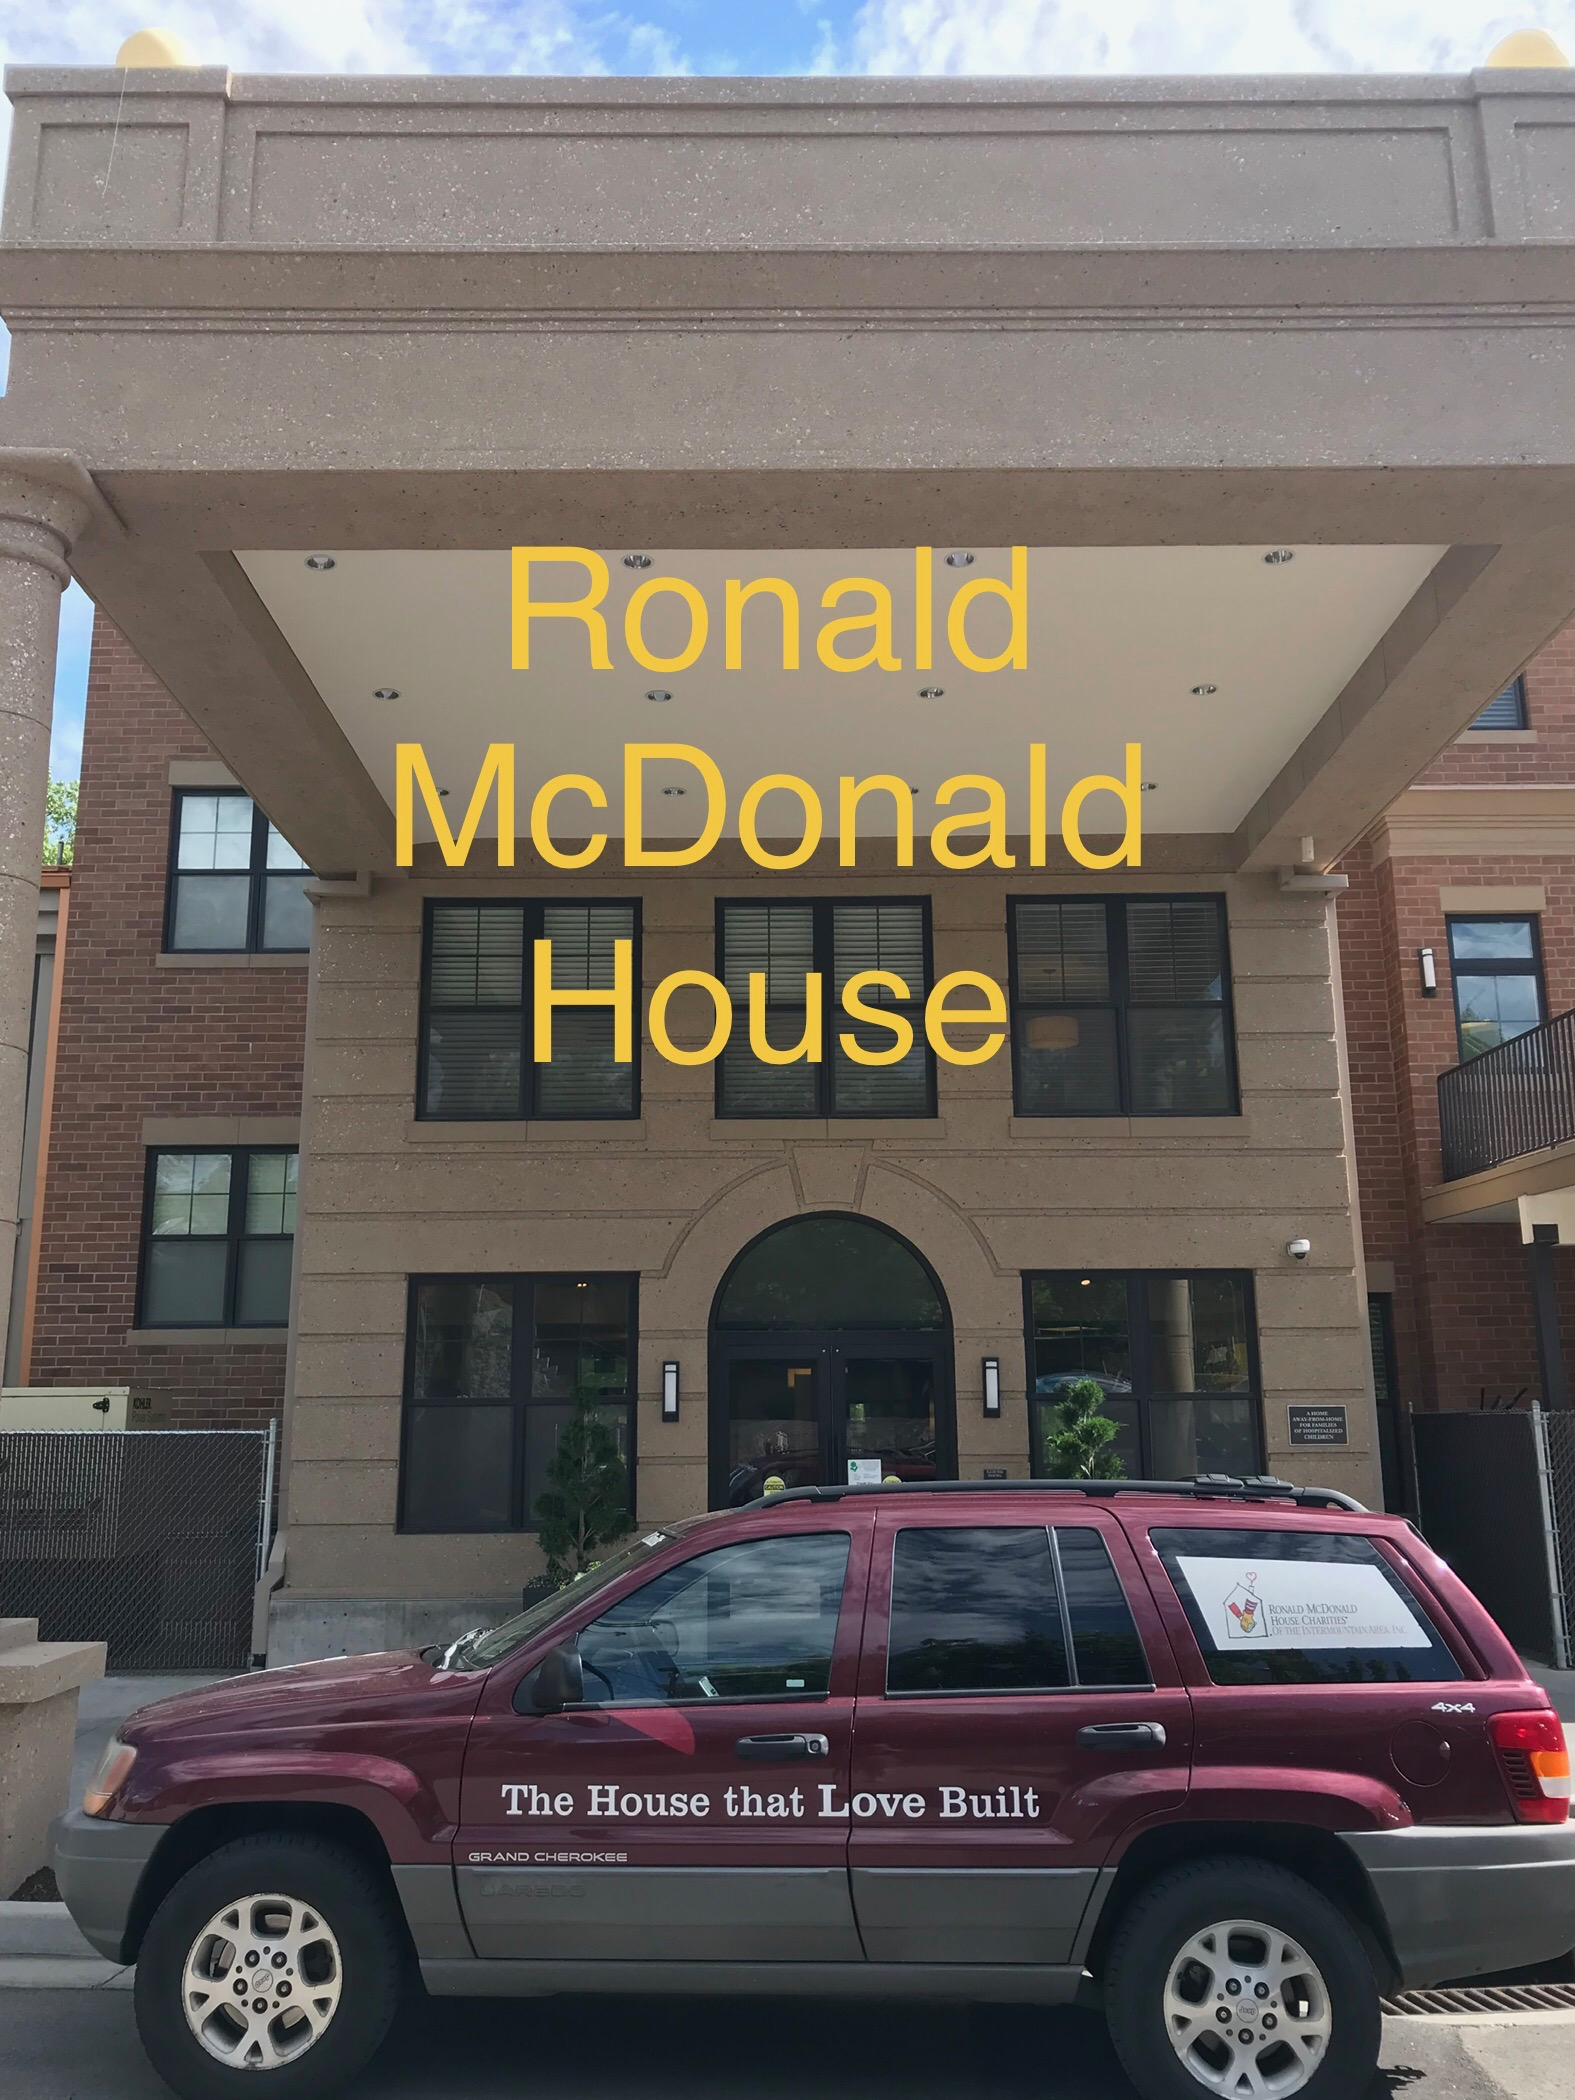 Pulling up to the Ronald McDonald House in Salt Lake City to drop off donated books.